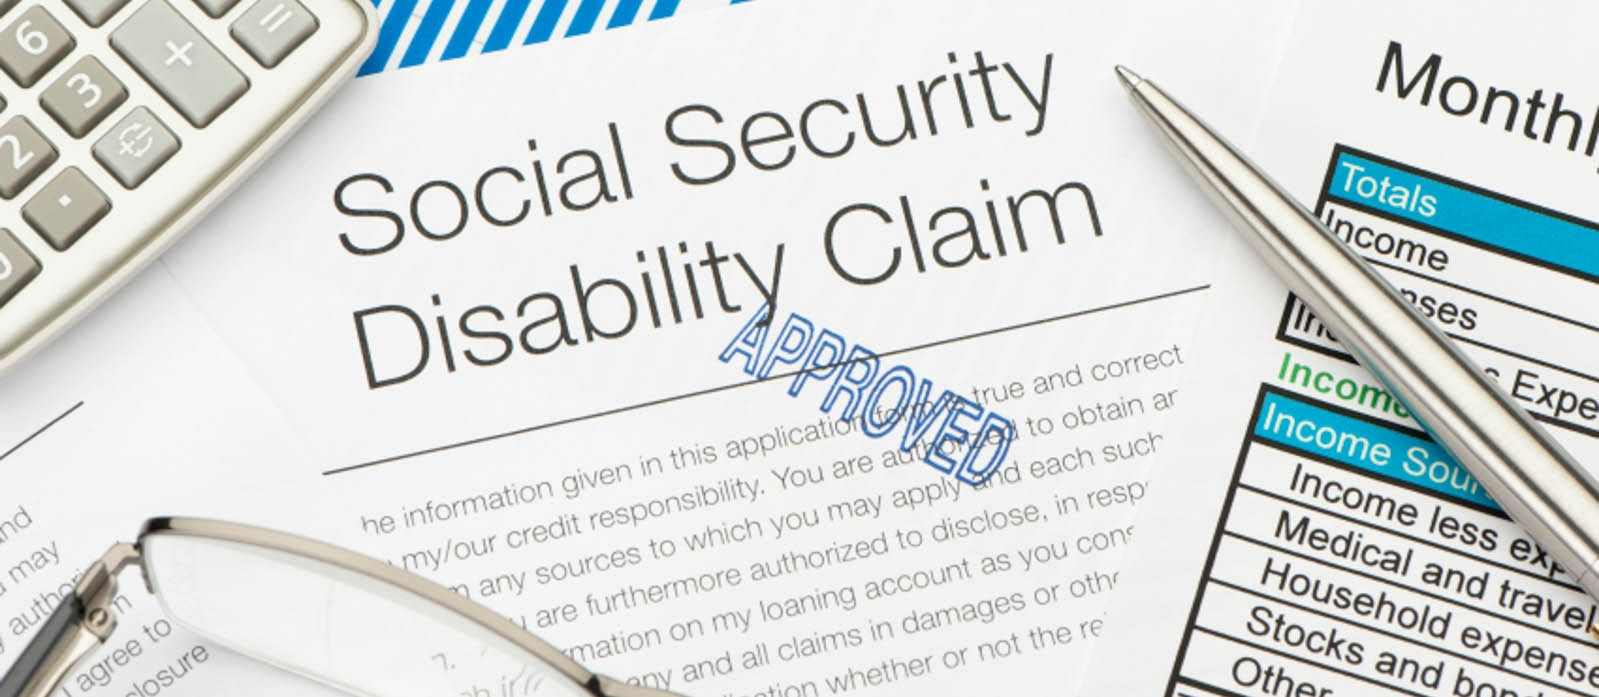 Social Security Disability and Supplemental Security Income